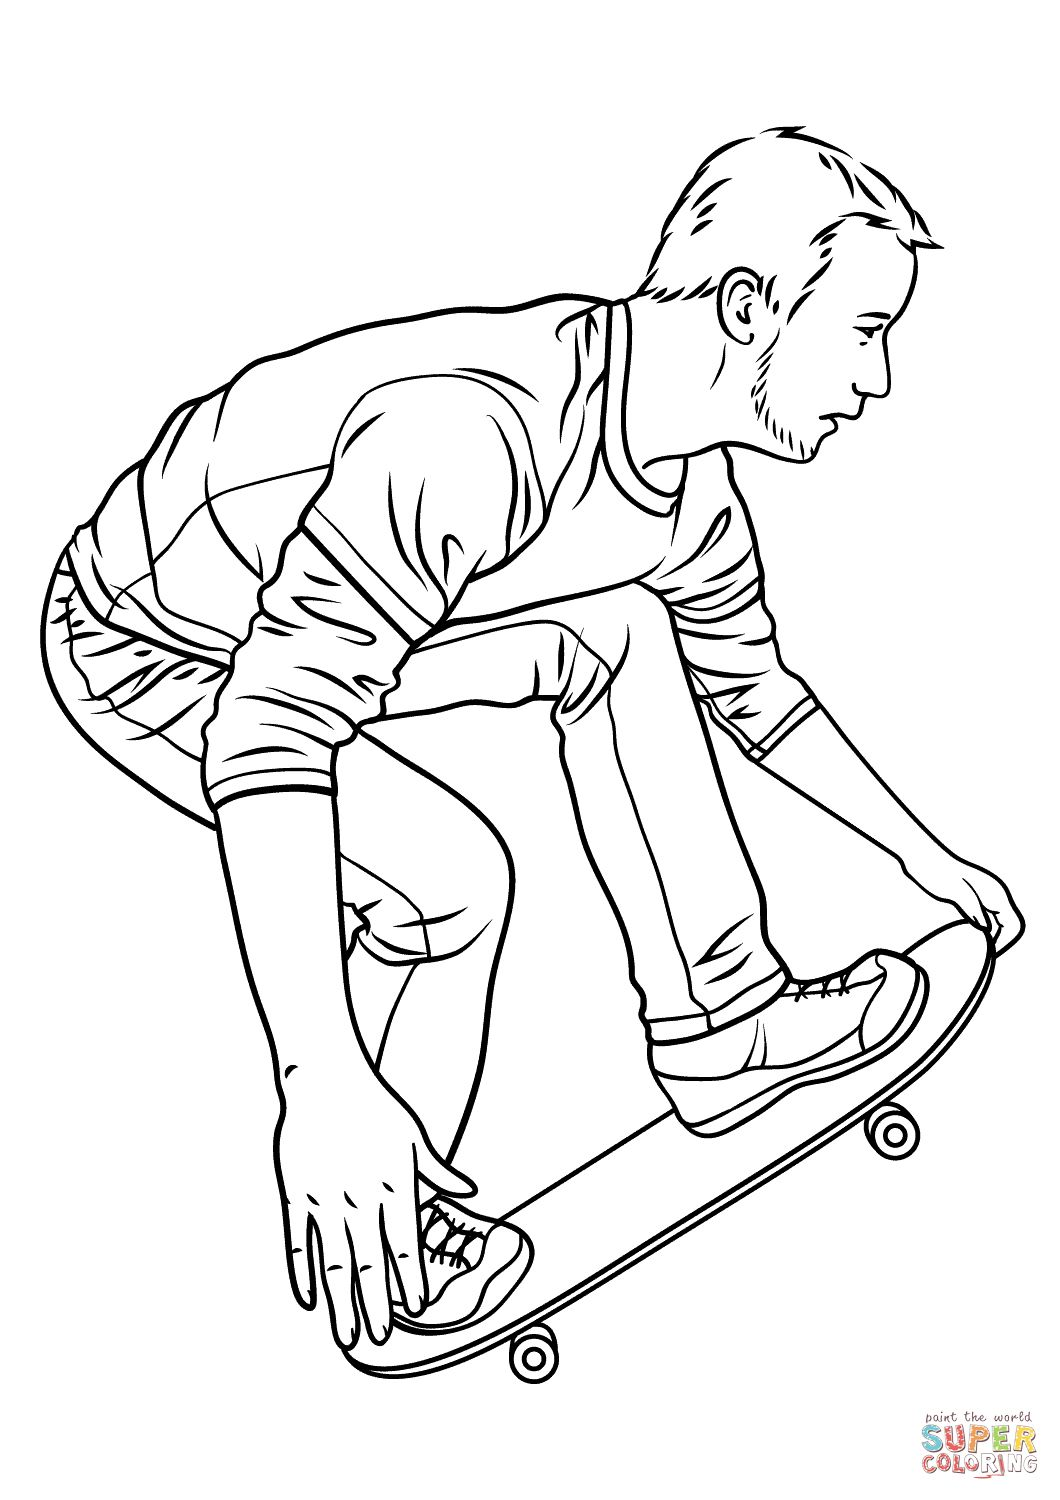 27 Marvelous Image Of Skateboard Coloring Page Entitlementtrap Com Coloring Pages Skateboard Pictures Cat Coloring Page